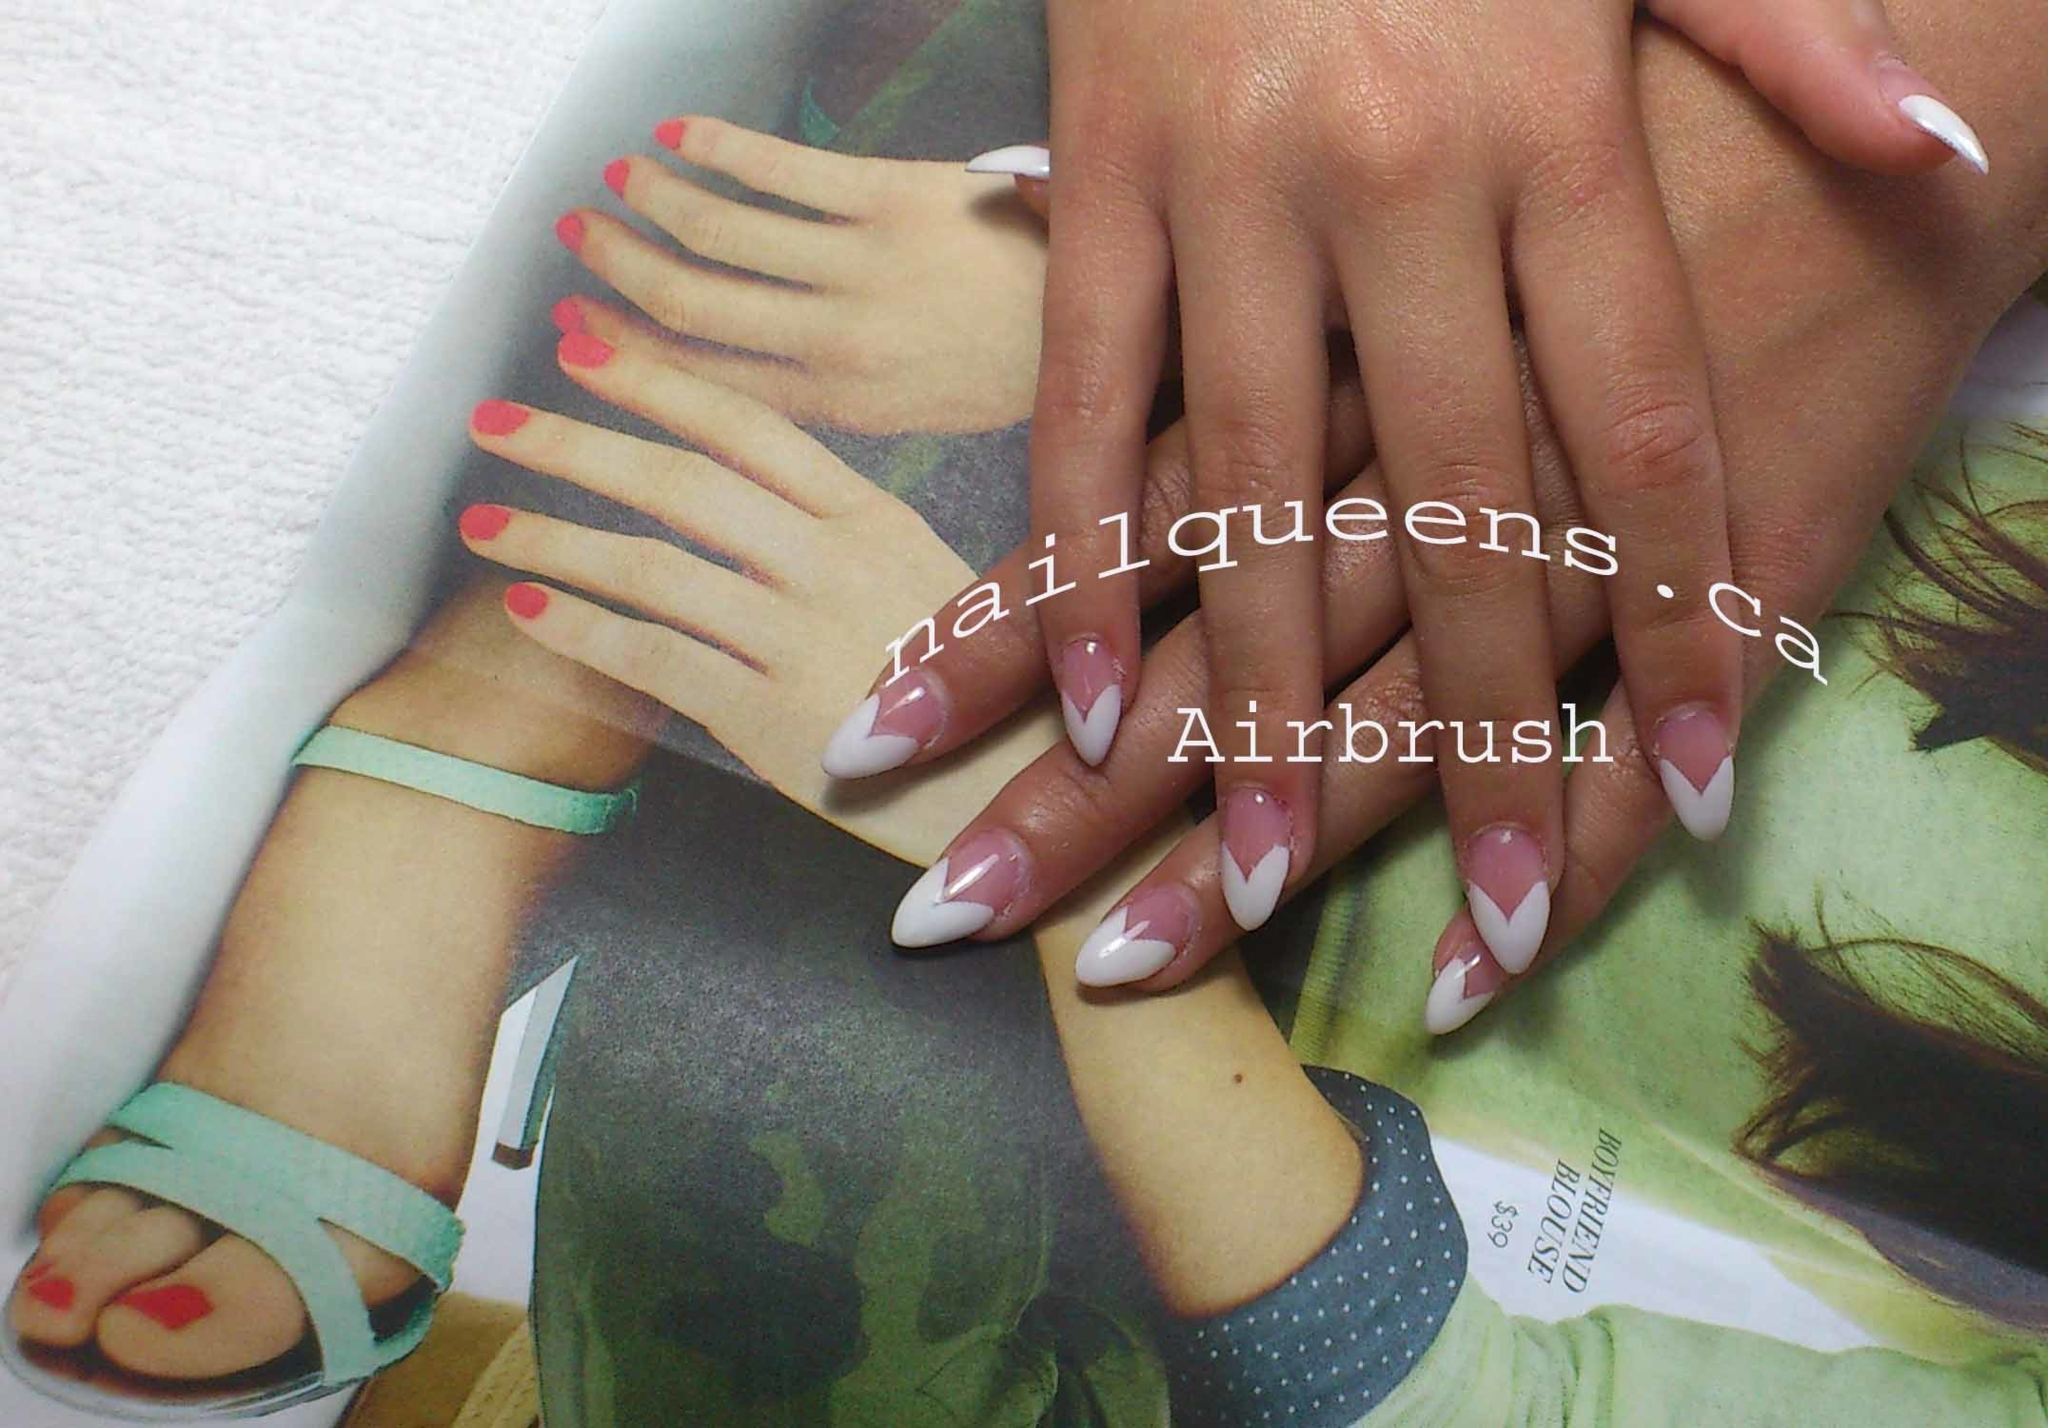 Nail Queens in Abbotsford